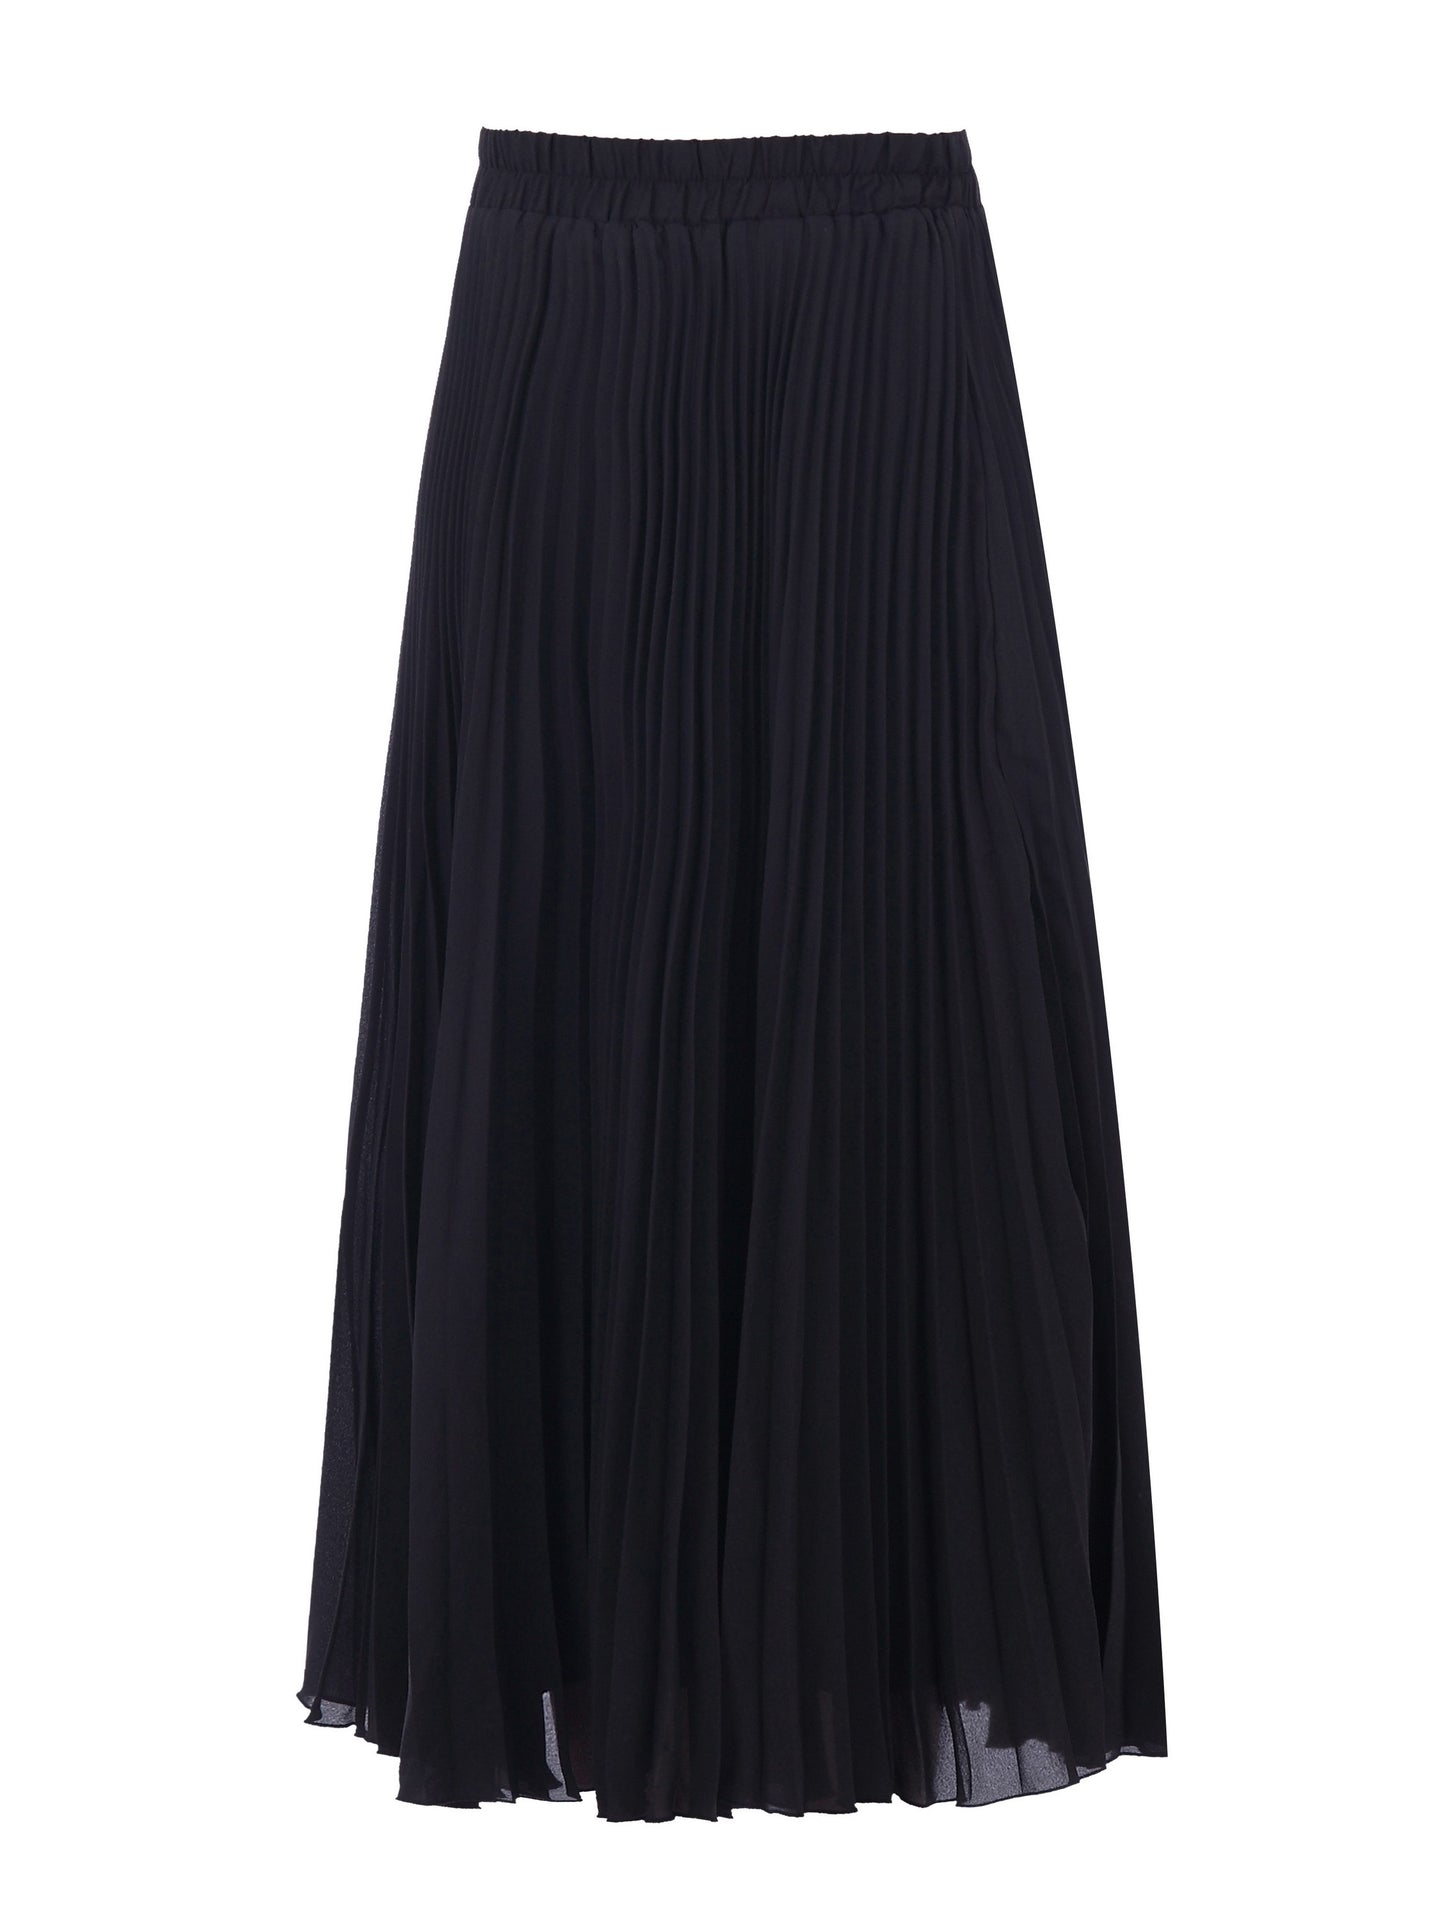 Pleated Full Circle Midi Skirt